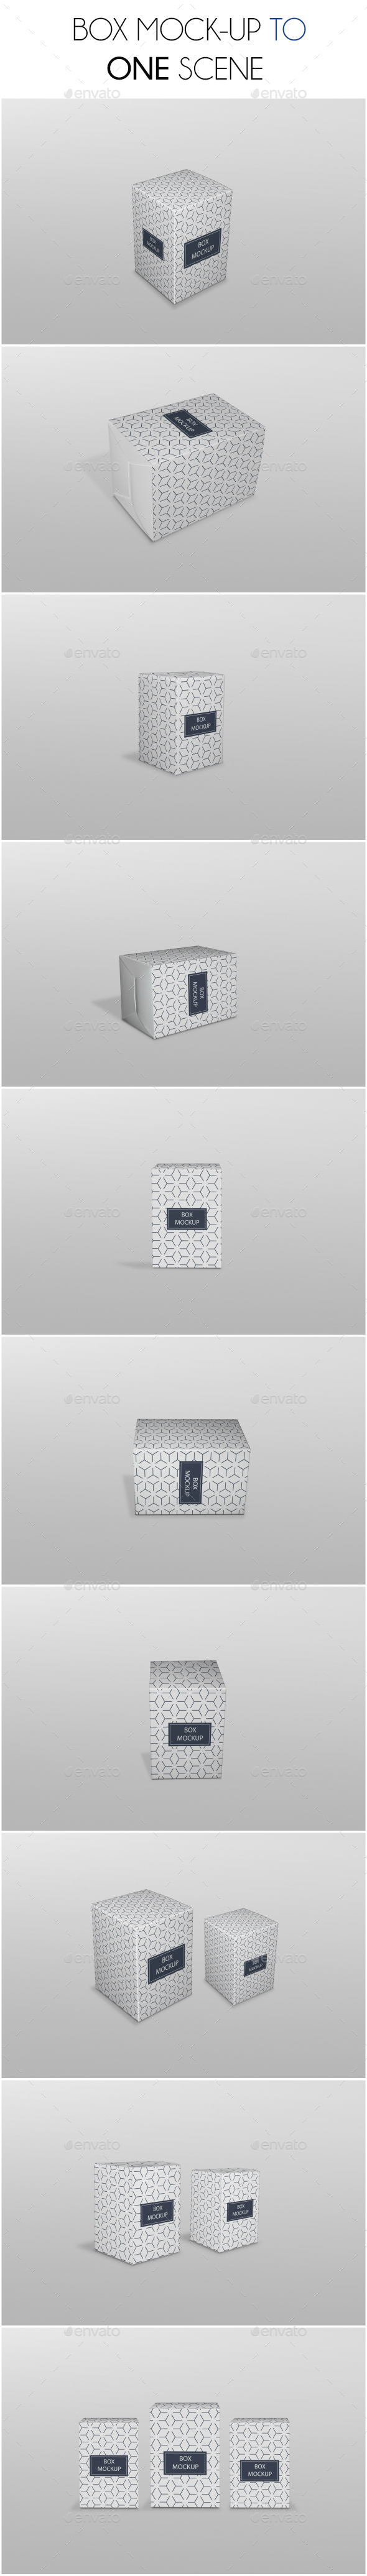 Medicine Box Mockup - Product Mock-Ups Graphics